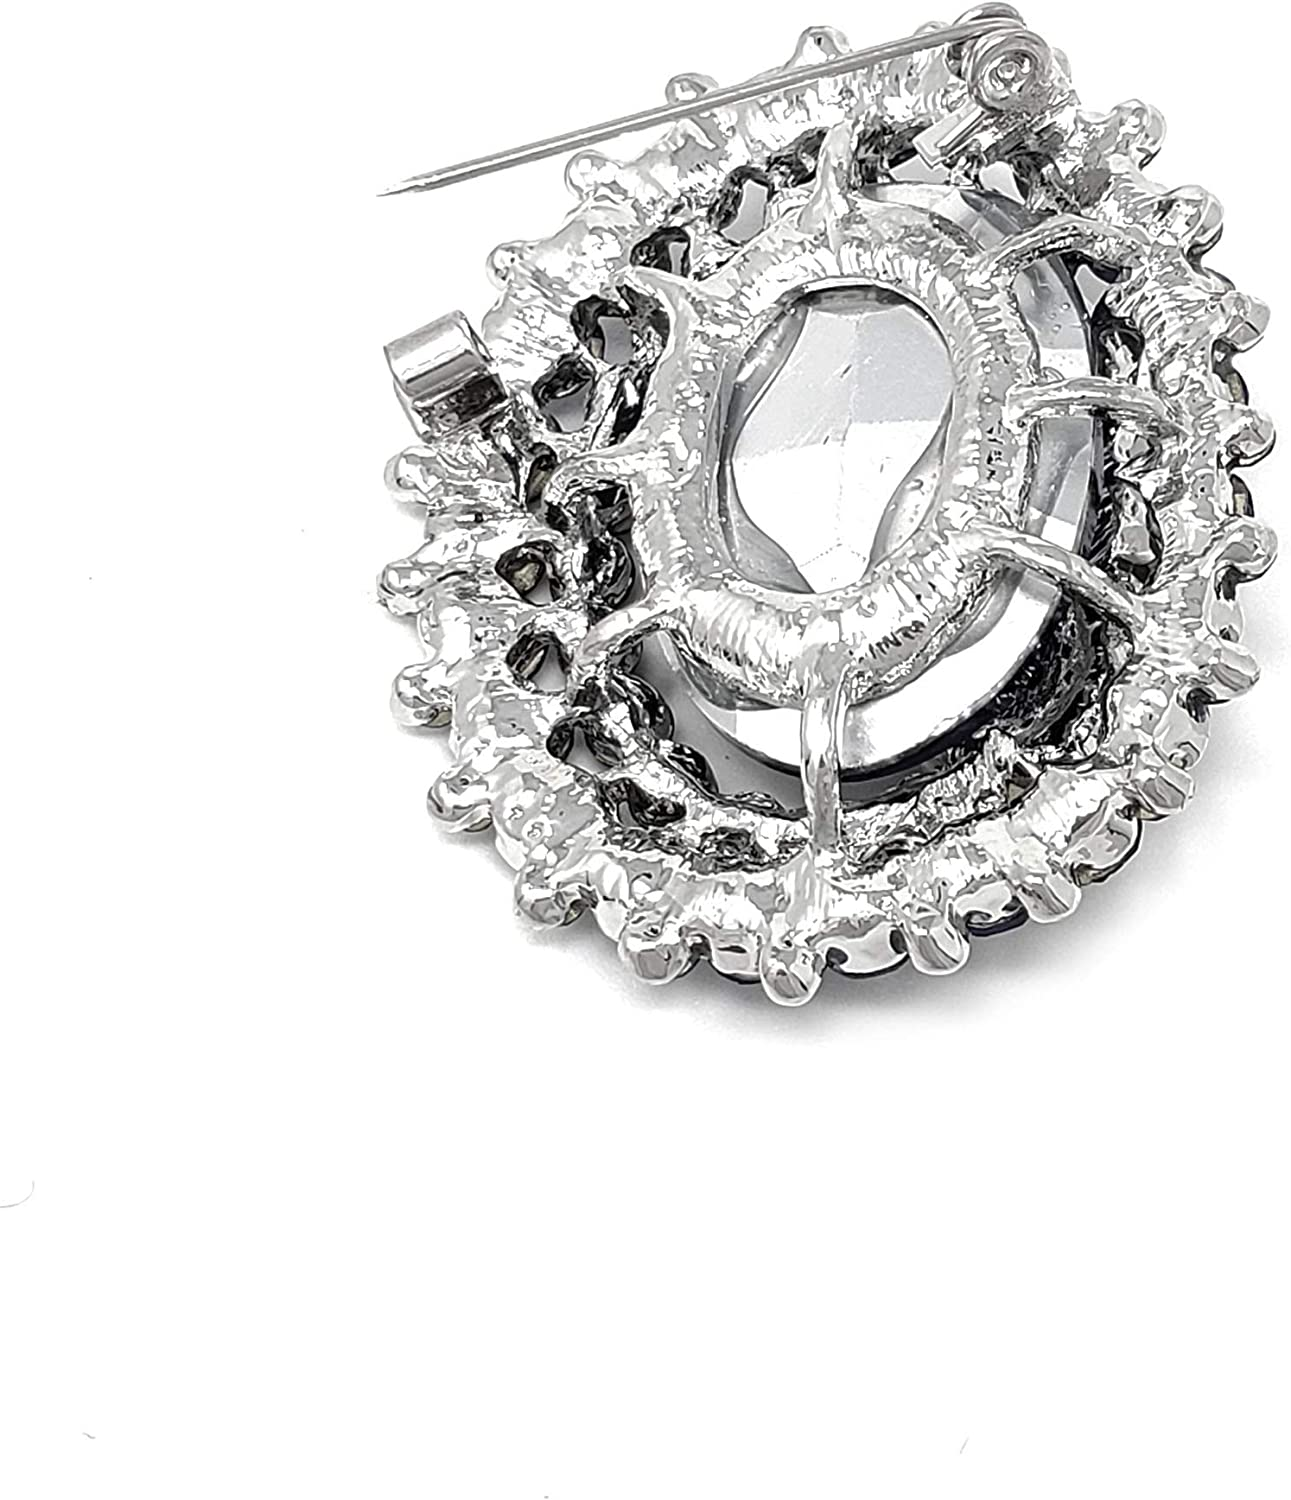 Fashion 21 Women's Elegant Small Size Oval Glass Crystal Double Flower Brooch Pin